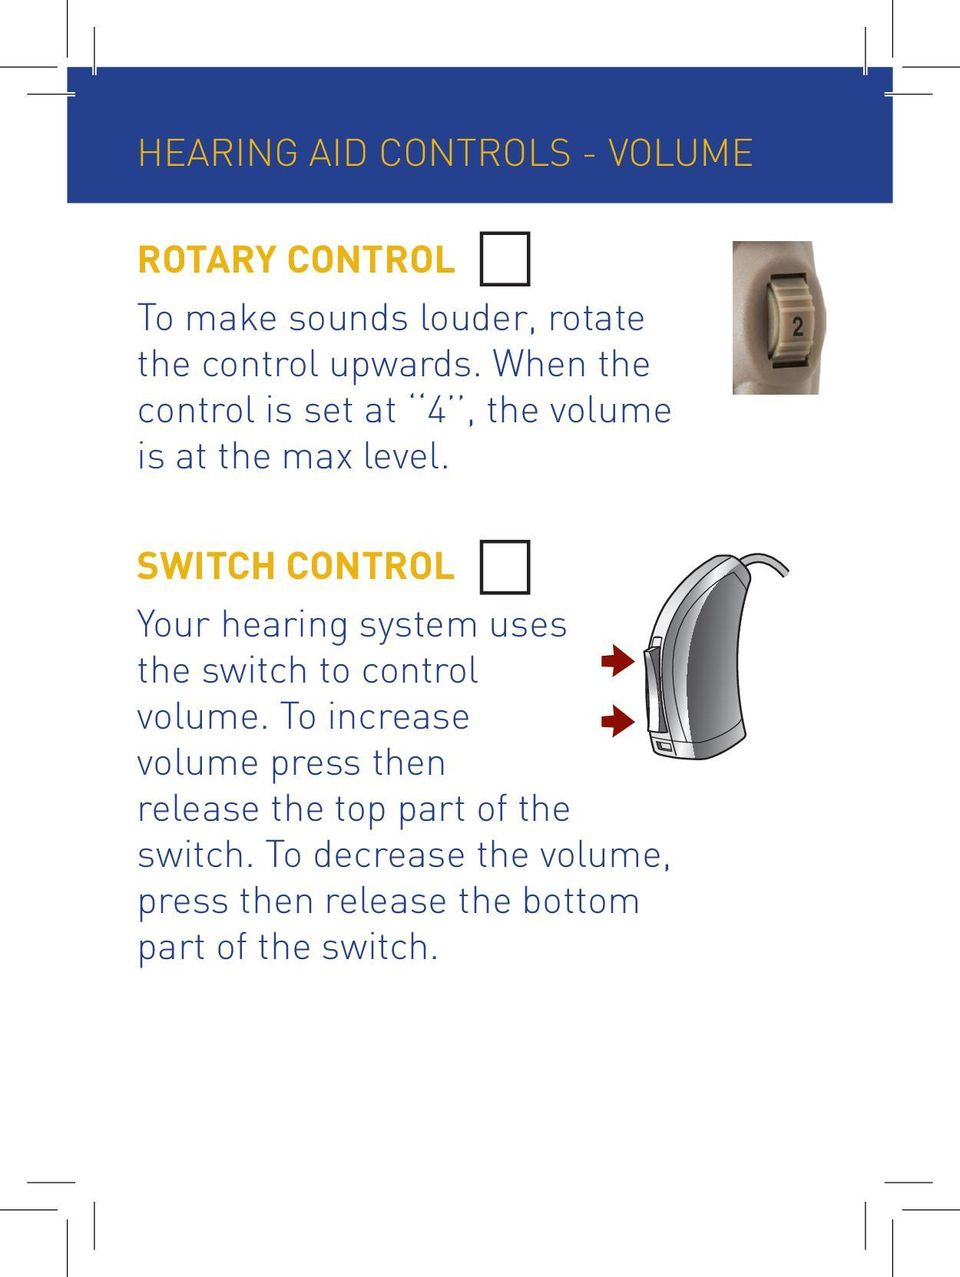 SWITCH CONTROL Your hearing system uses the switch to control volume.